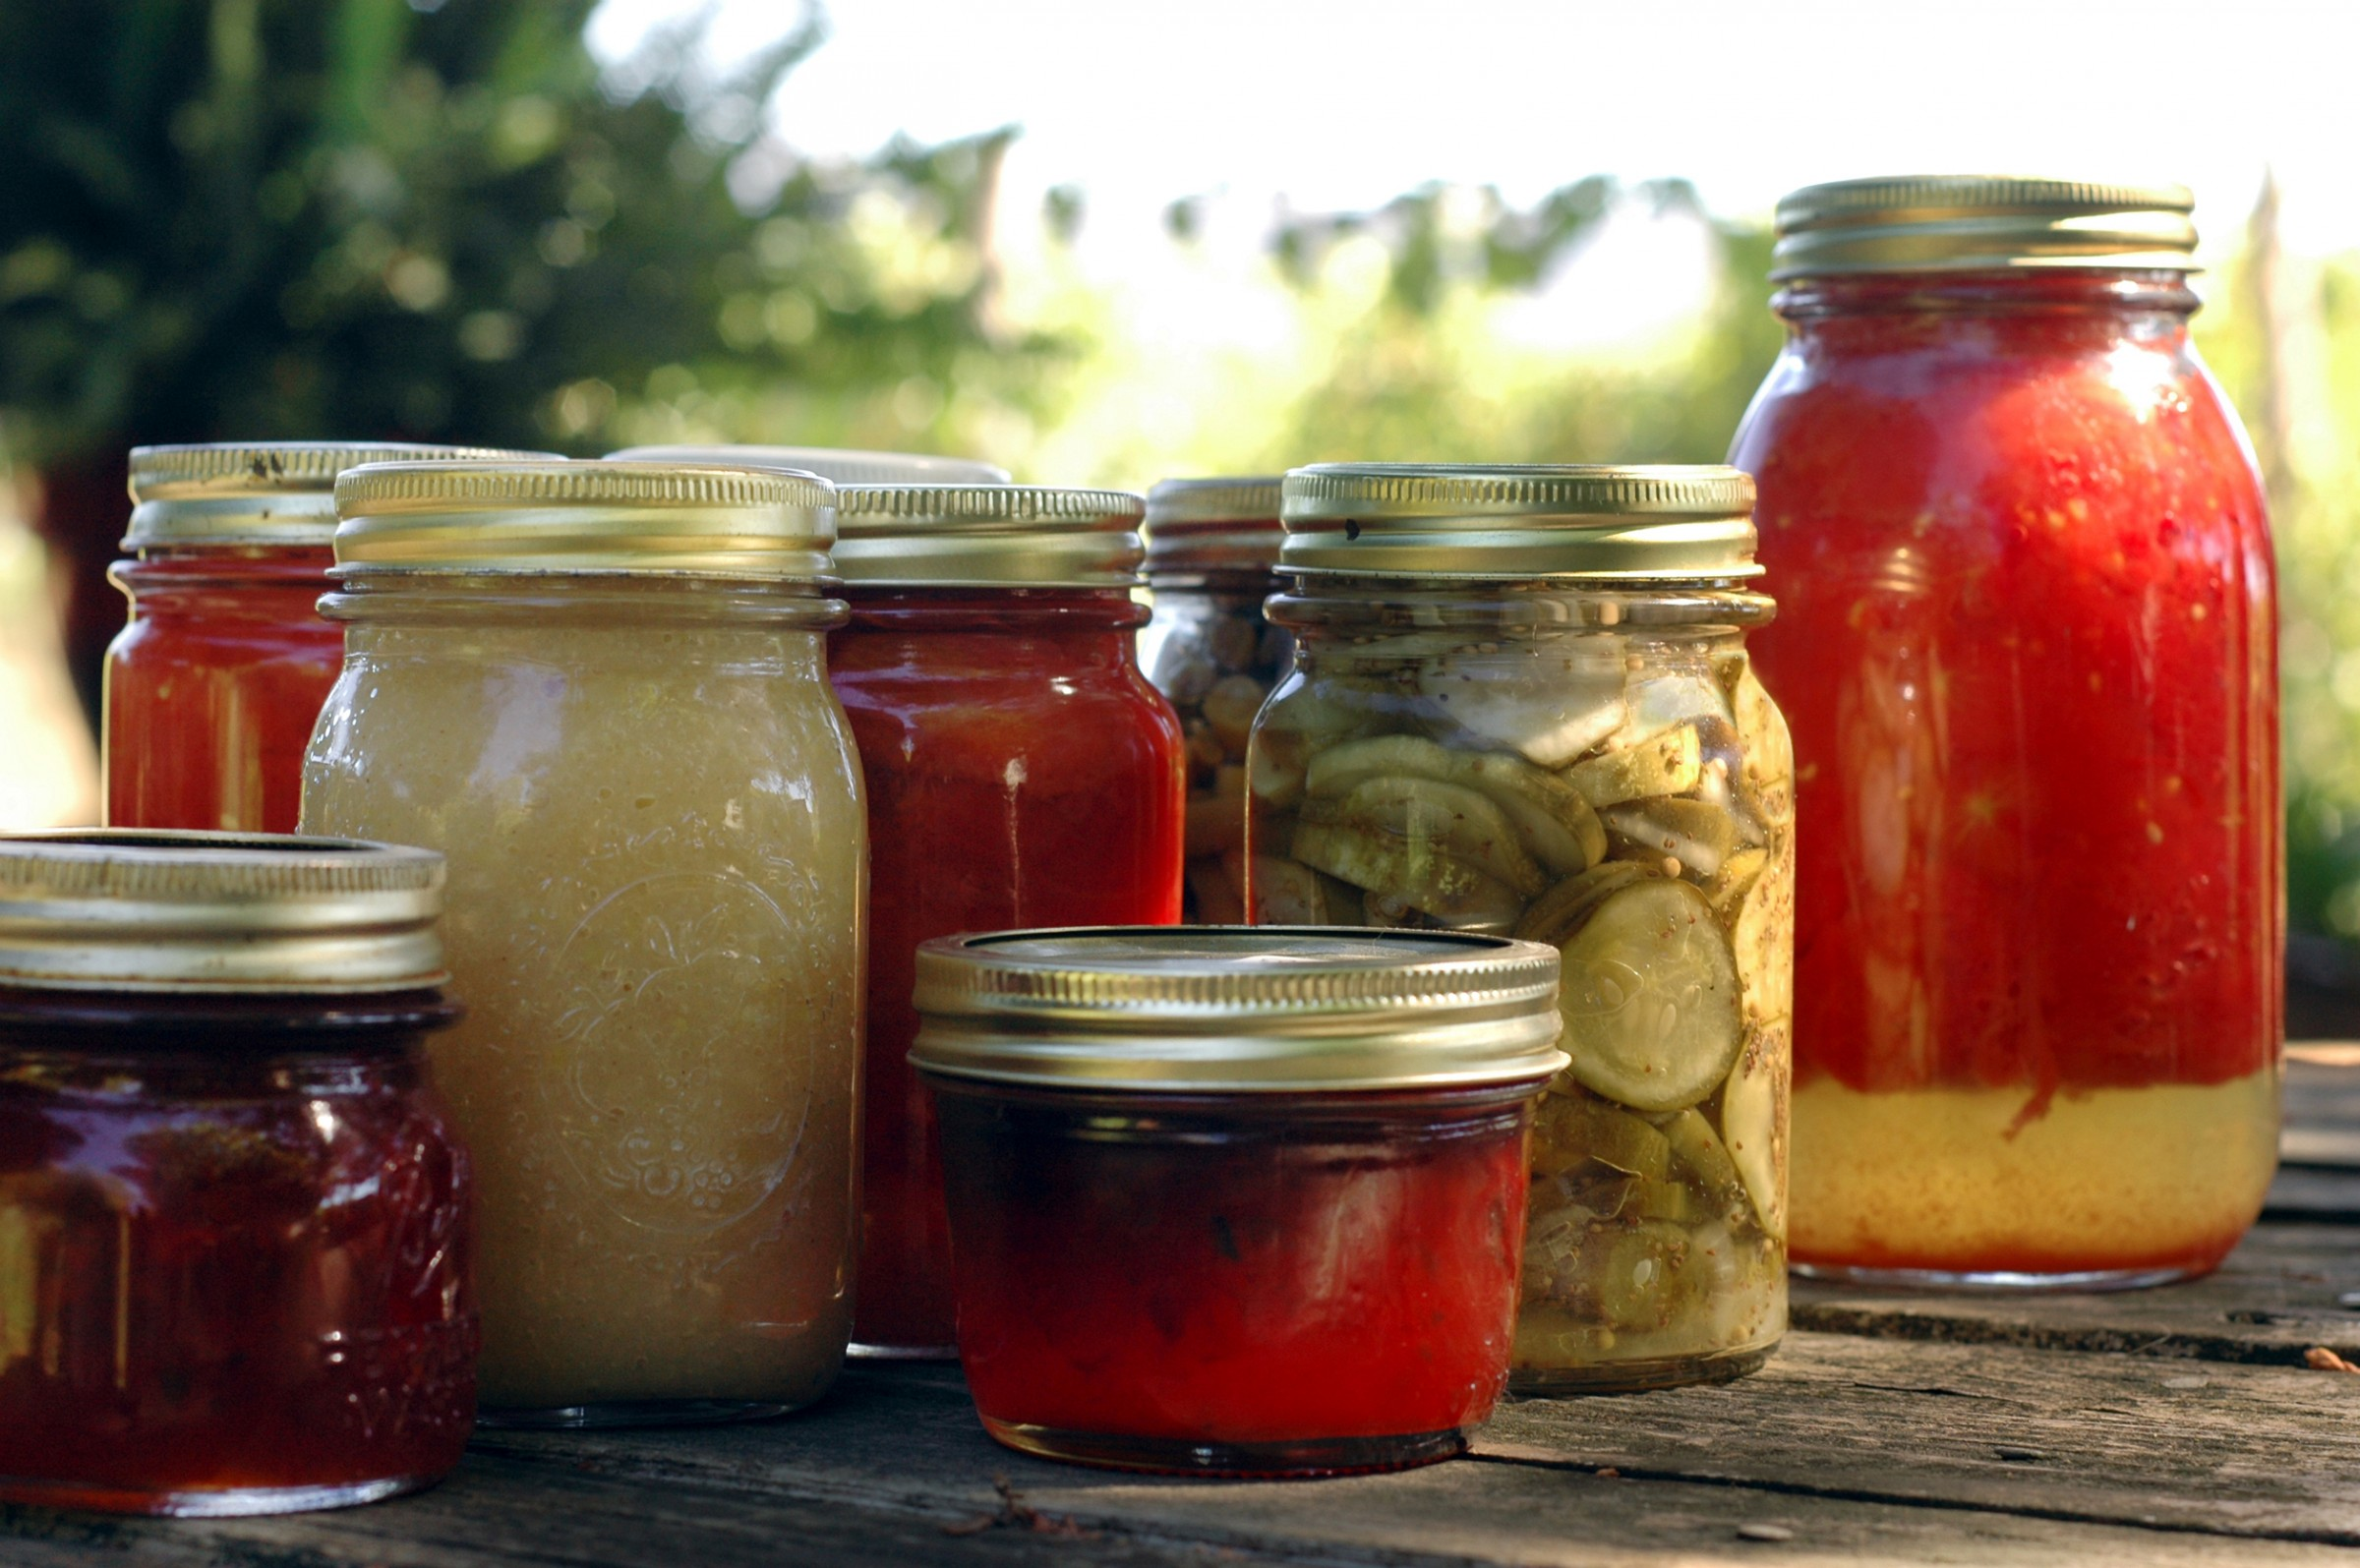 Home food preservationrecipes marinette county homemade preserves forumfinder Choice Image